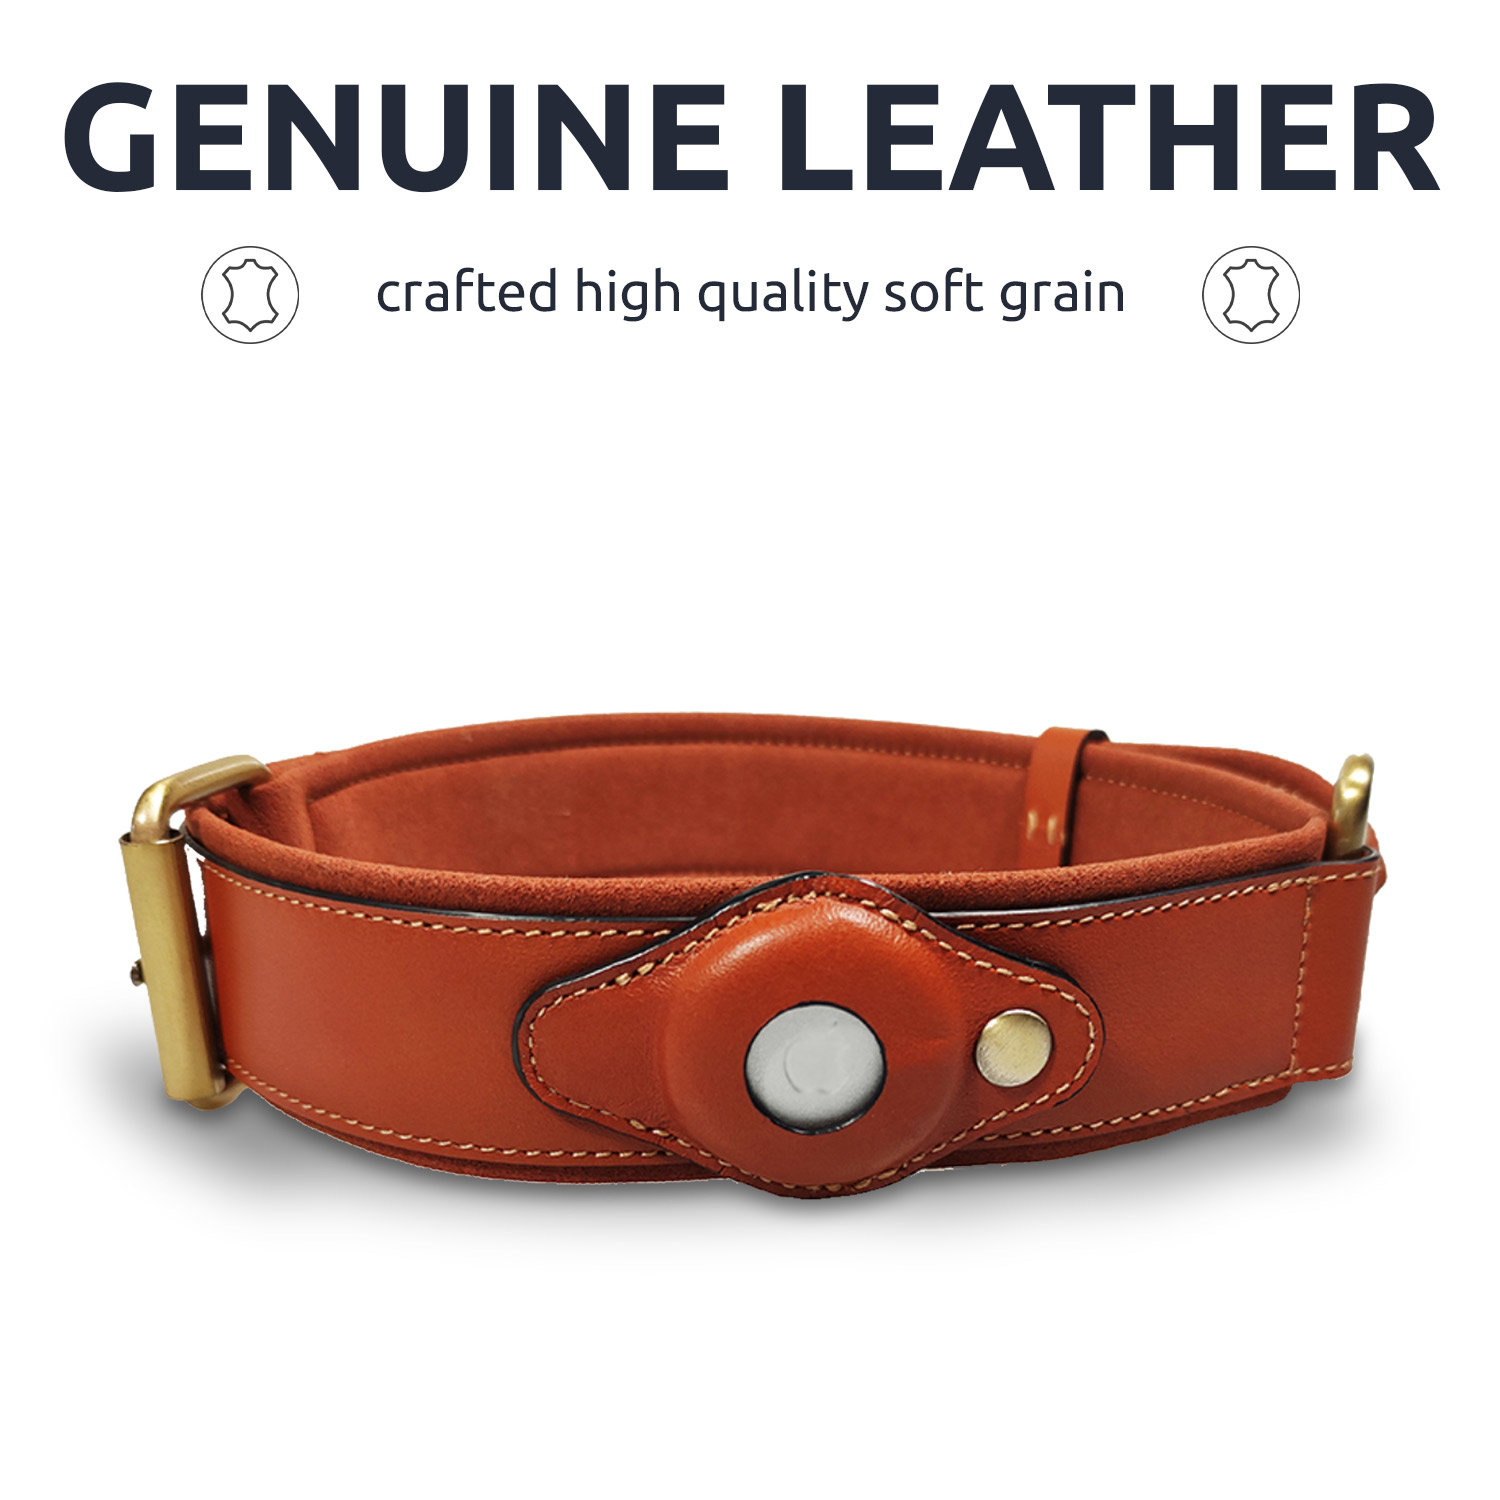 https://images.mobilefun.co.uk/graphics/productmisc/86144/Olixar_Genuine_Leather_Apple-AirTags_Dog_Collar_Small_Black_Gallery.2.jpg